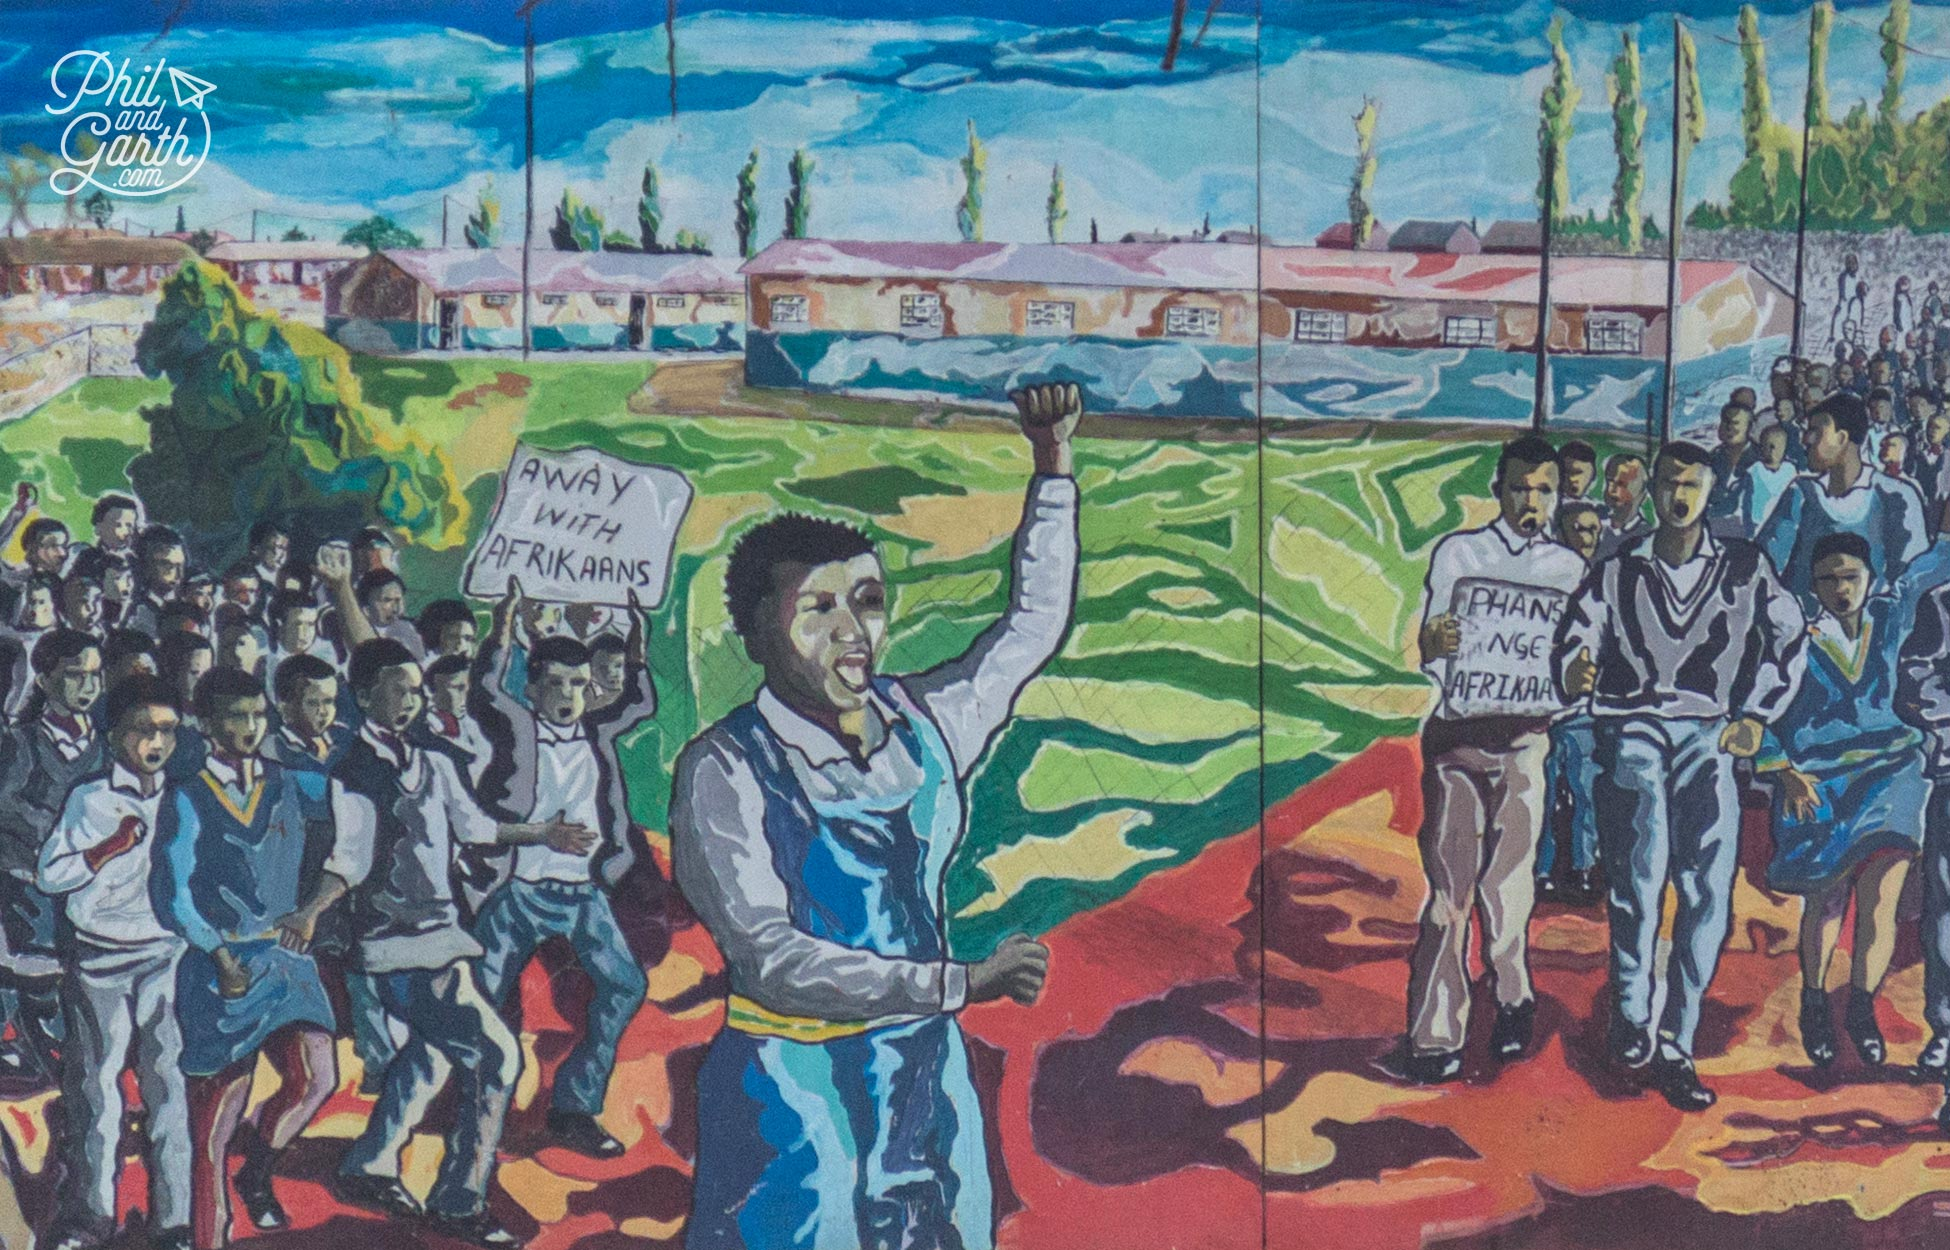 Marching for freedom - a mural depicts the scene of local schoolchildren